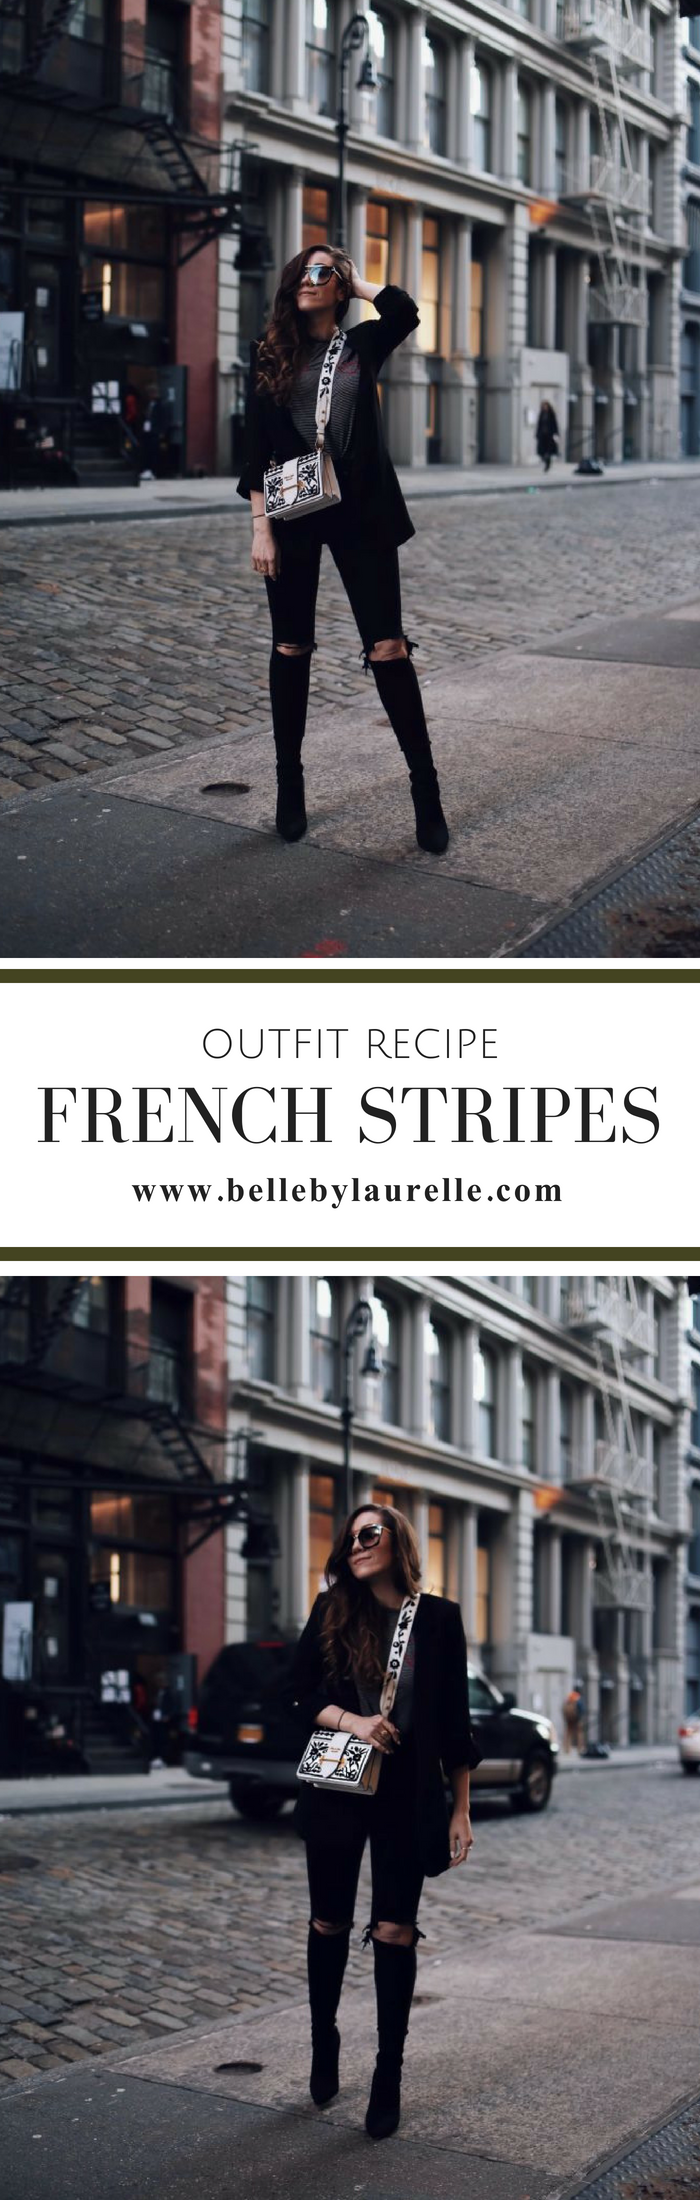 OUTFIT RECIPE FRENCH STRIPES PARIS STYLE Belle by Laurelle